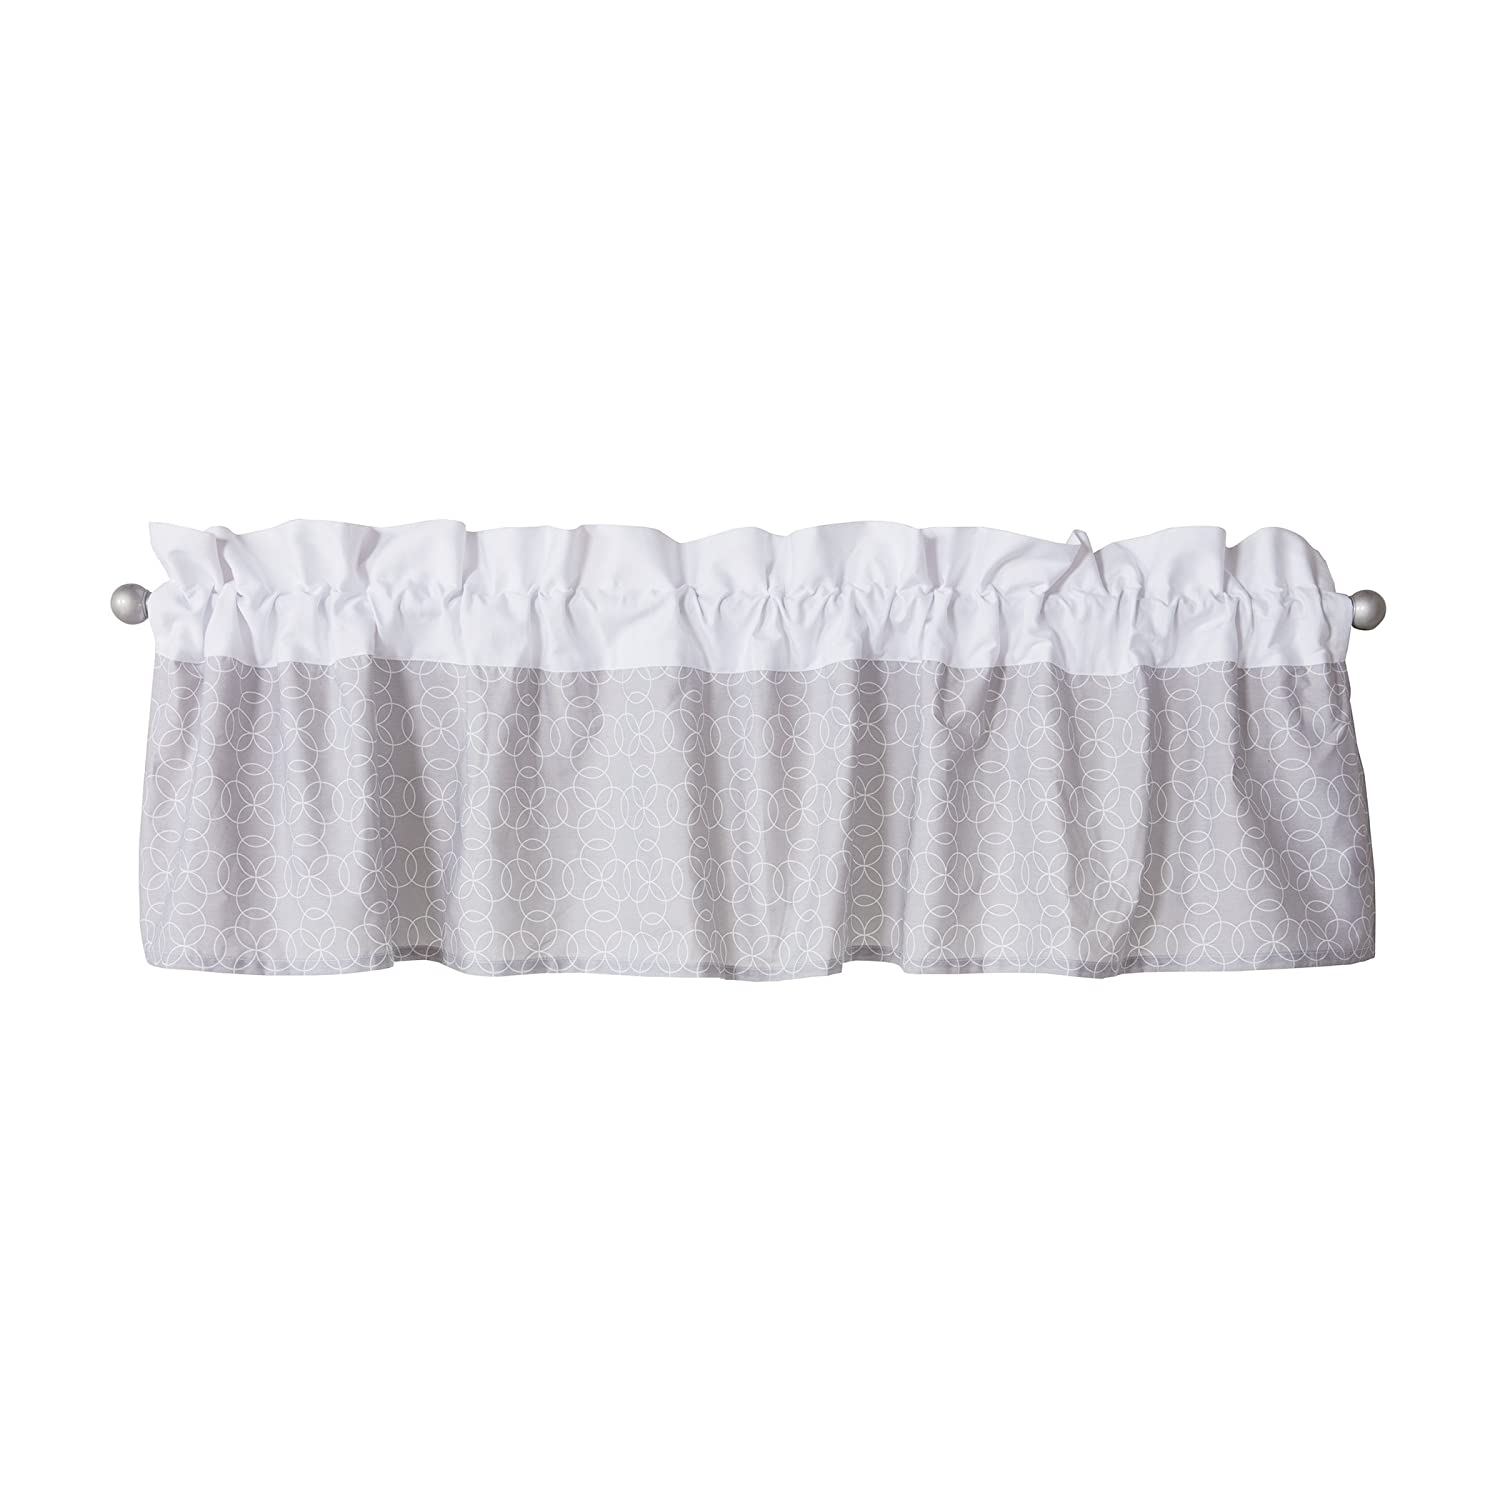 Trend Lab Window Valance, Gray and White Circles 101124